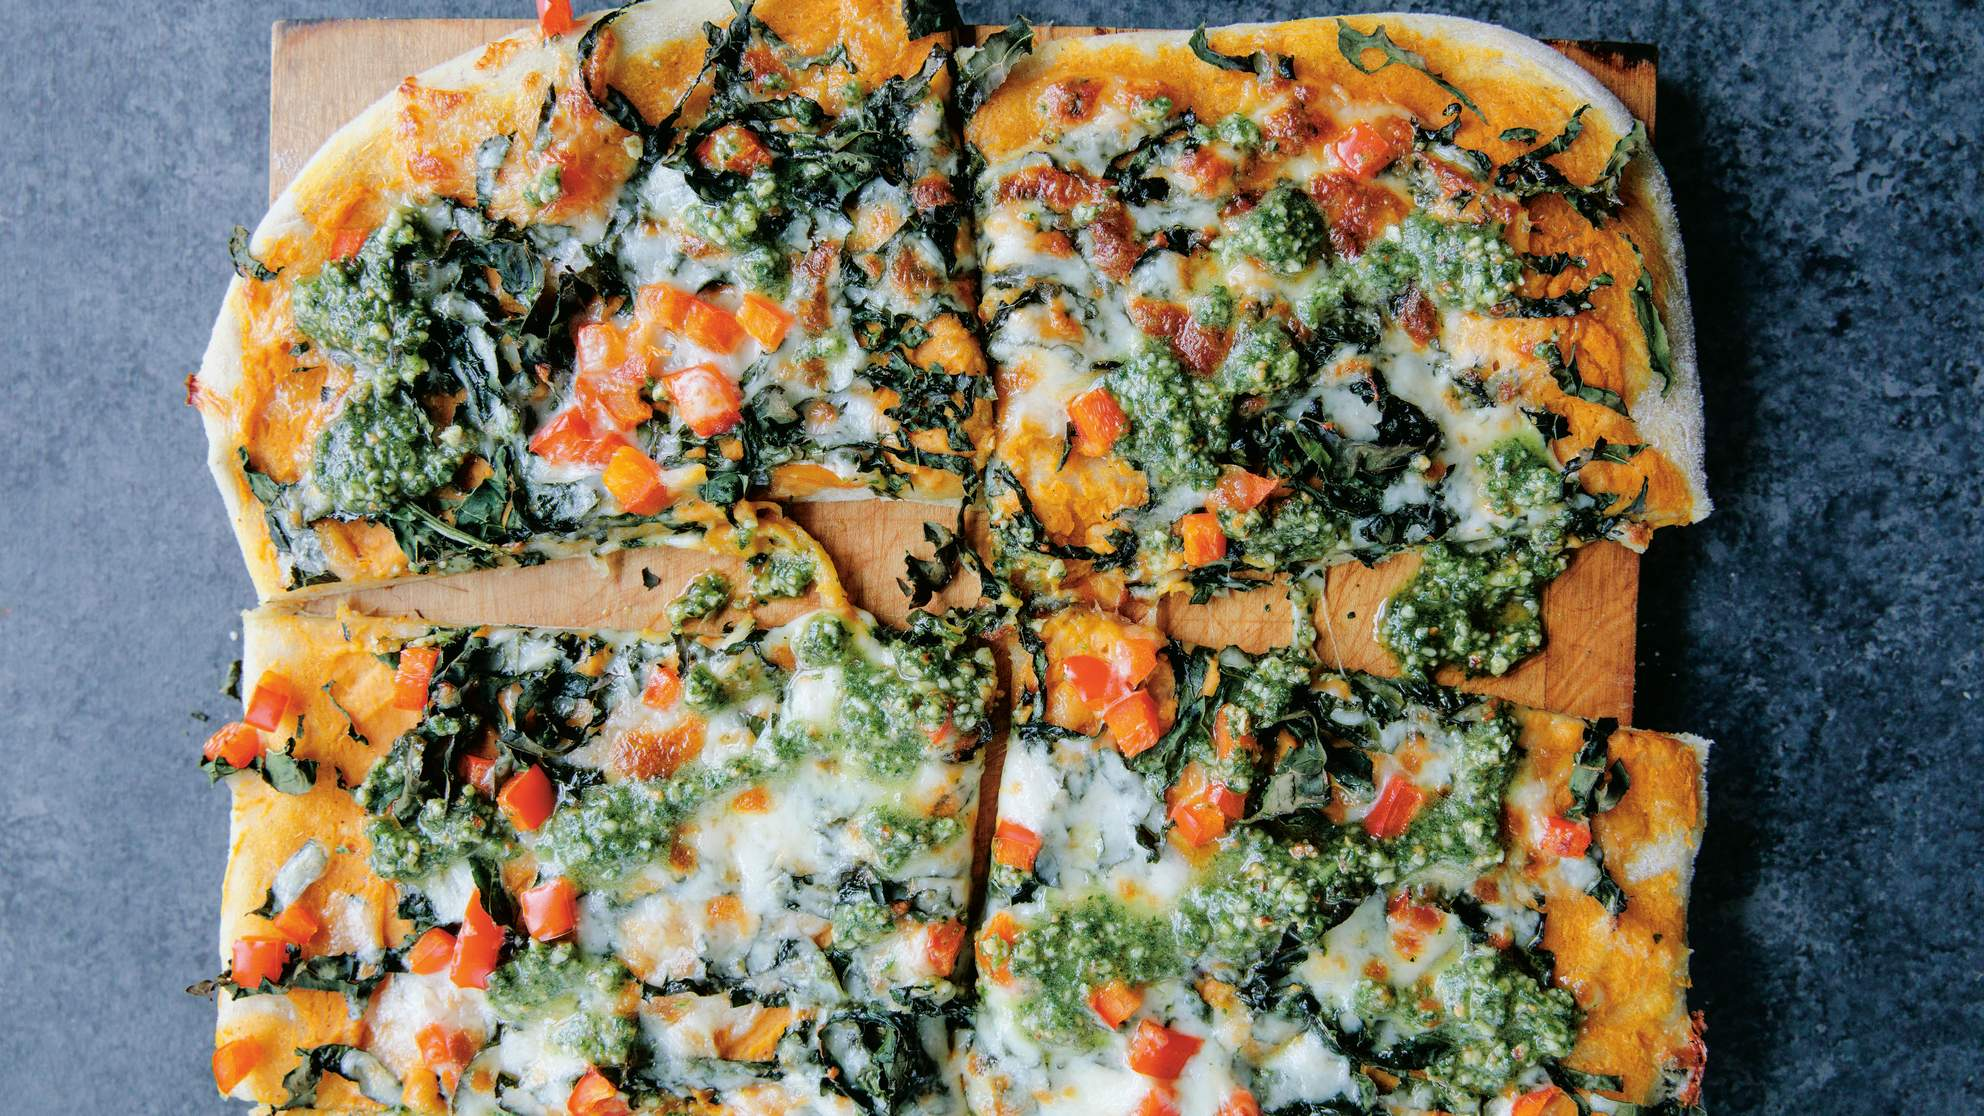 Sweet Potato, Kale, and Parsley Pesto Pizza